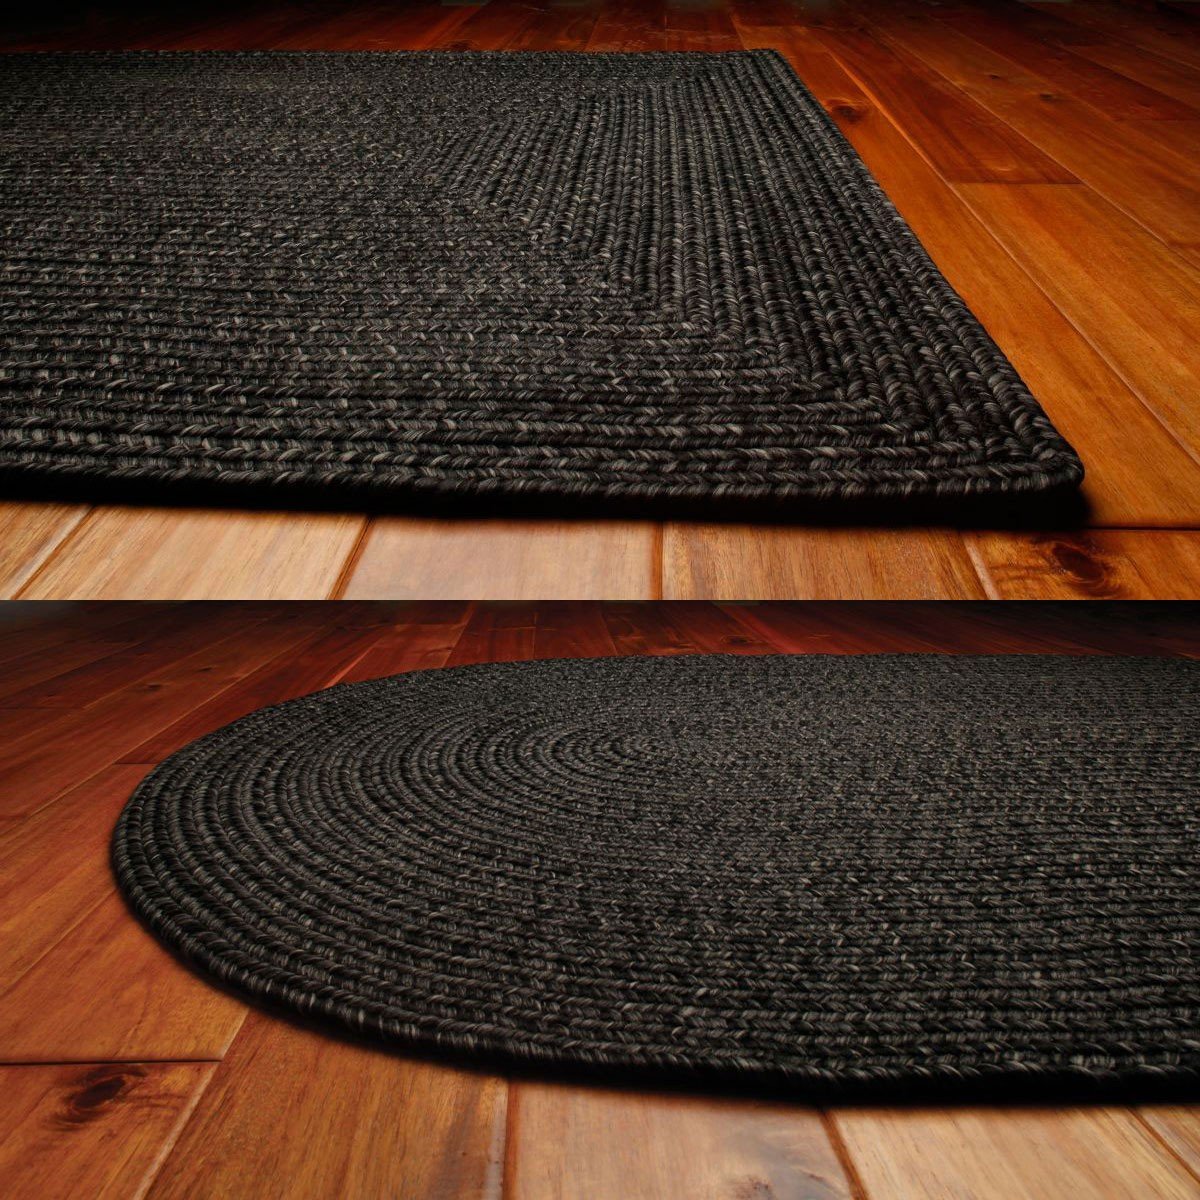 Black Ultra Durable Braided Rugs in oval and rectangle option shapes for floor decor ideas